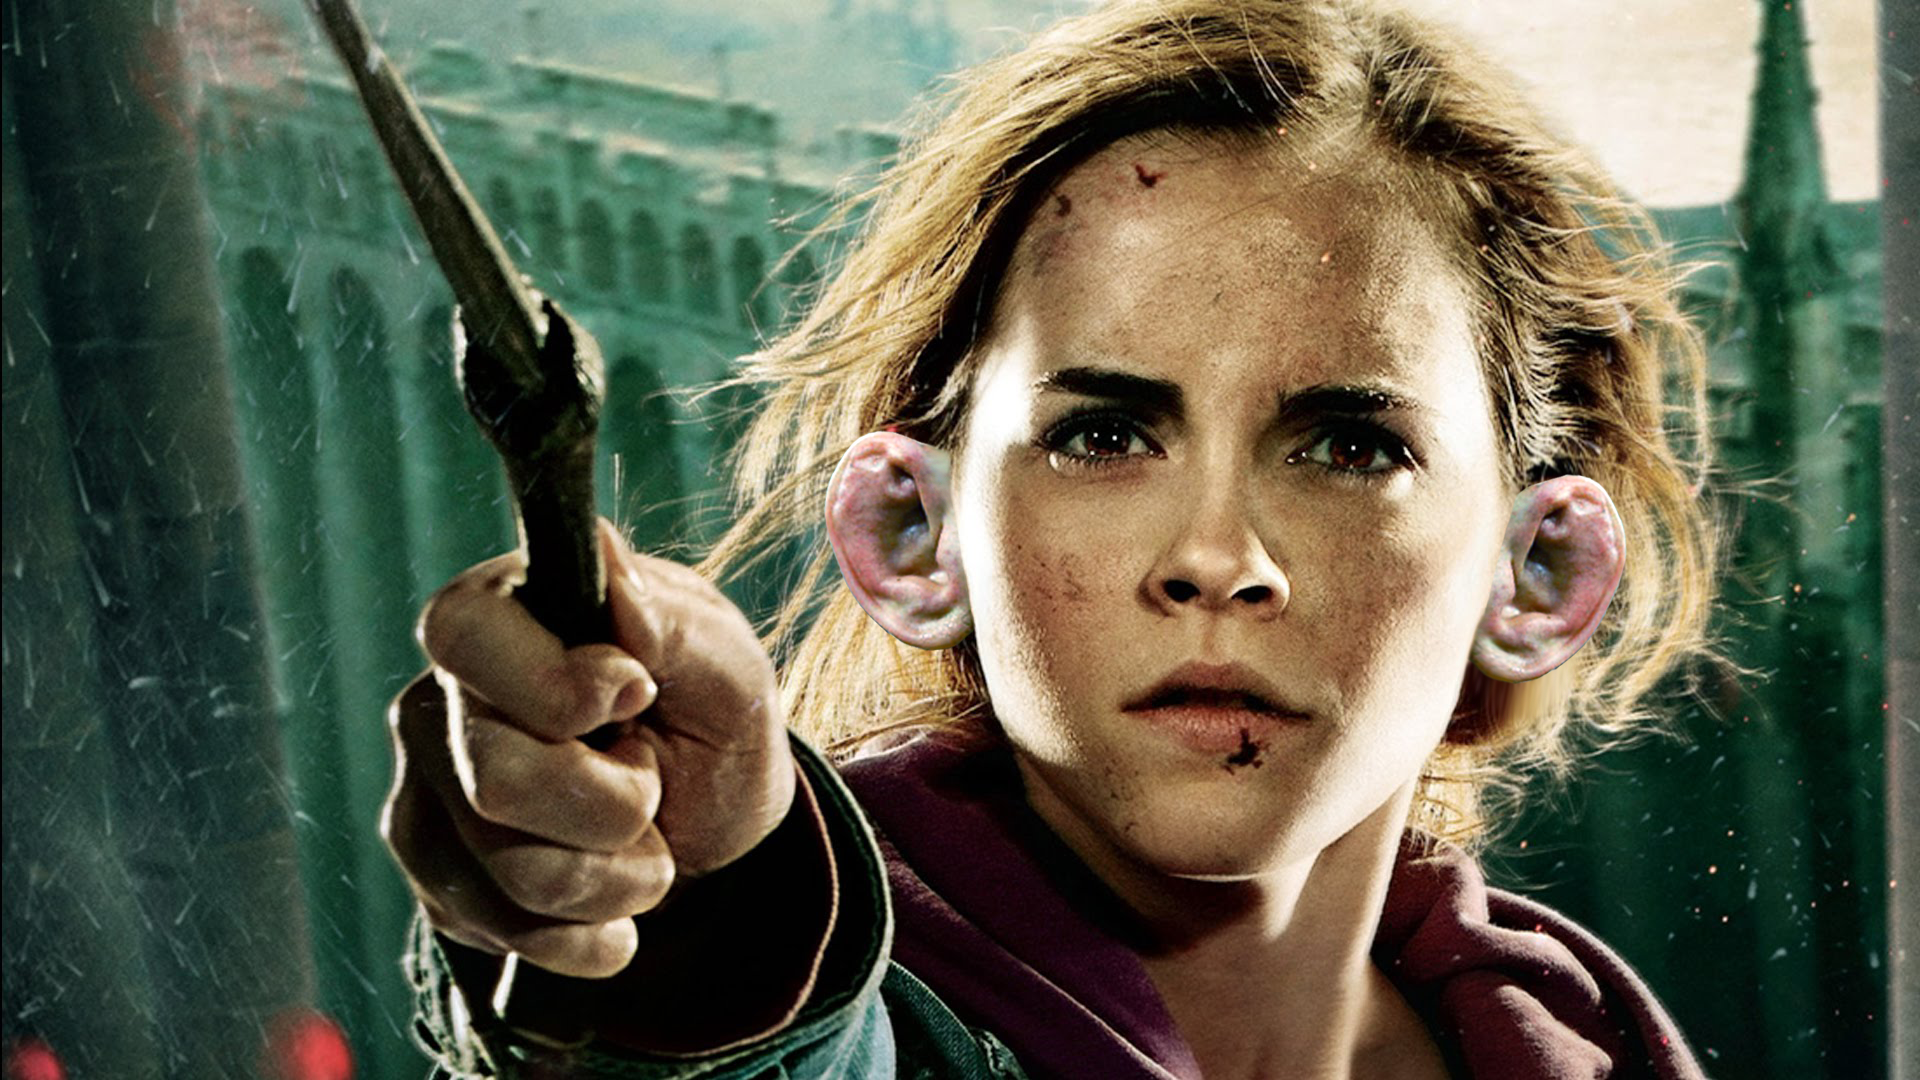 Facts About Hermione Granger For Kids